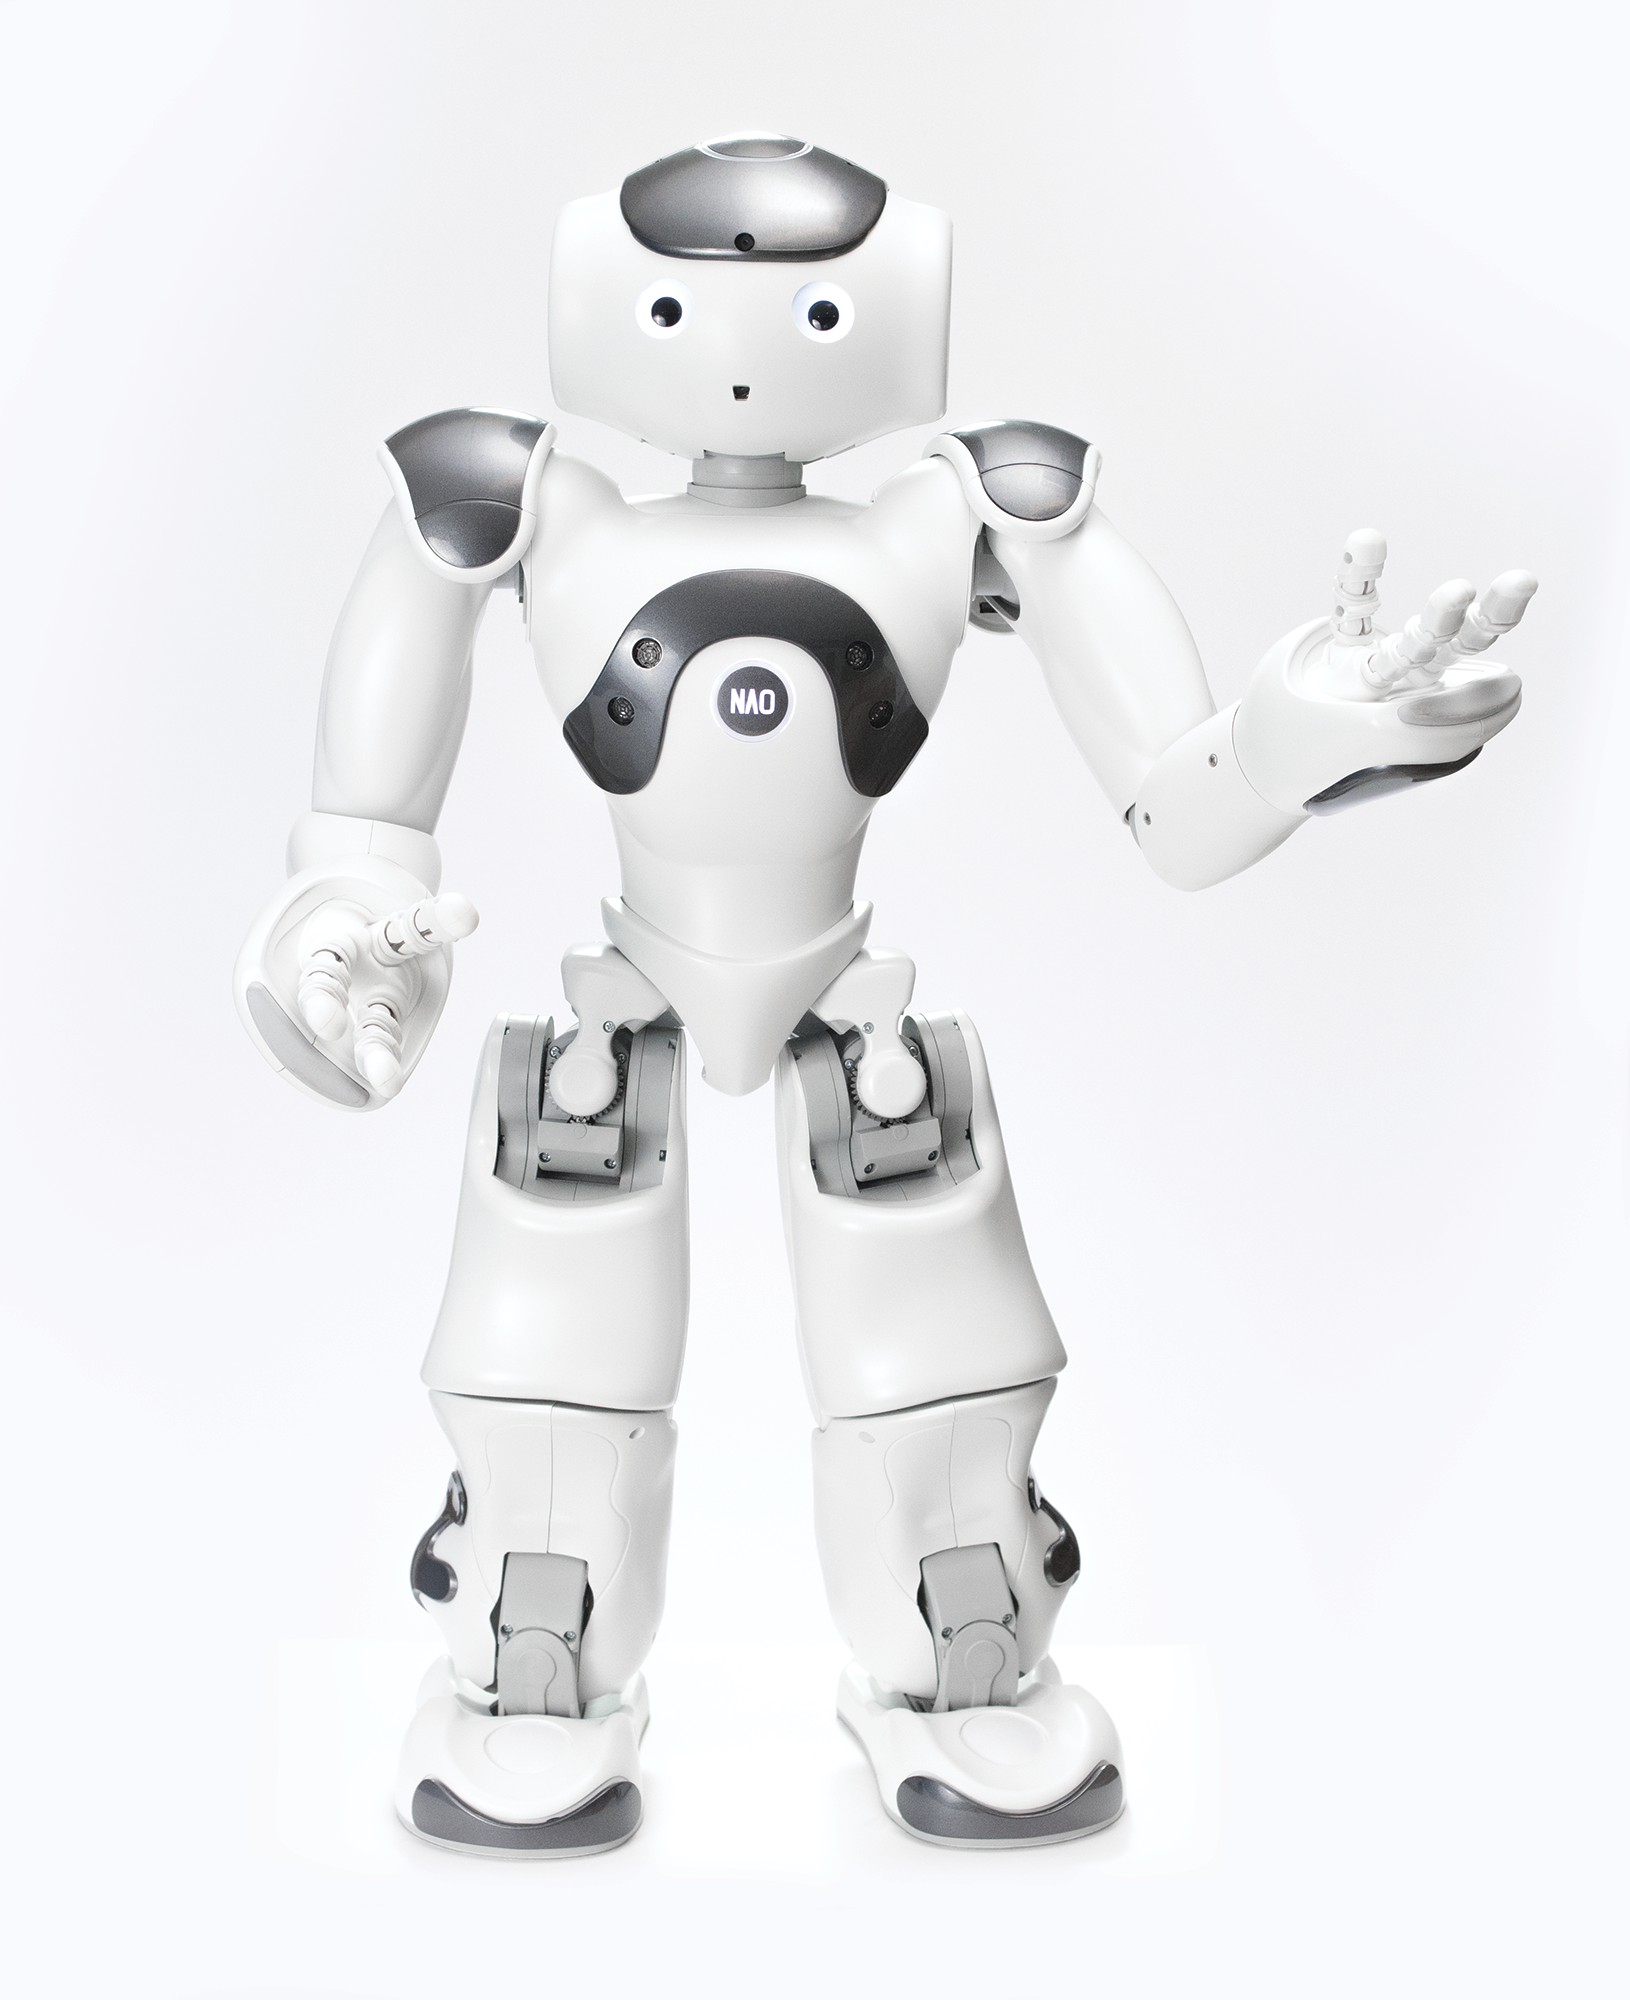 NAO ⁶ | The fully programmable humanoid robot by SoftBank